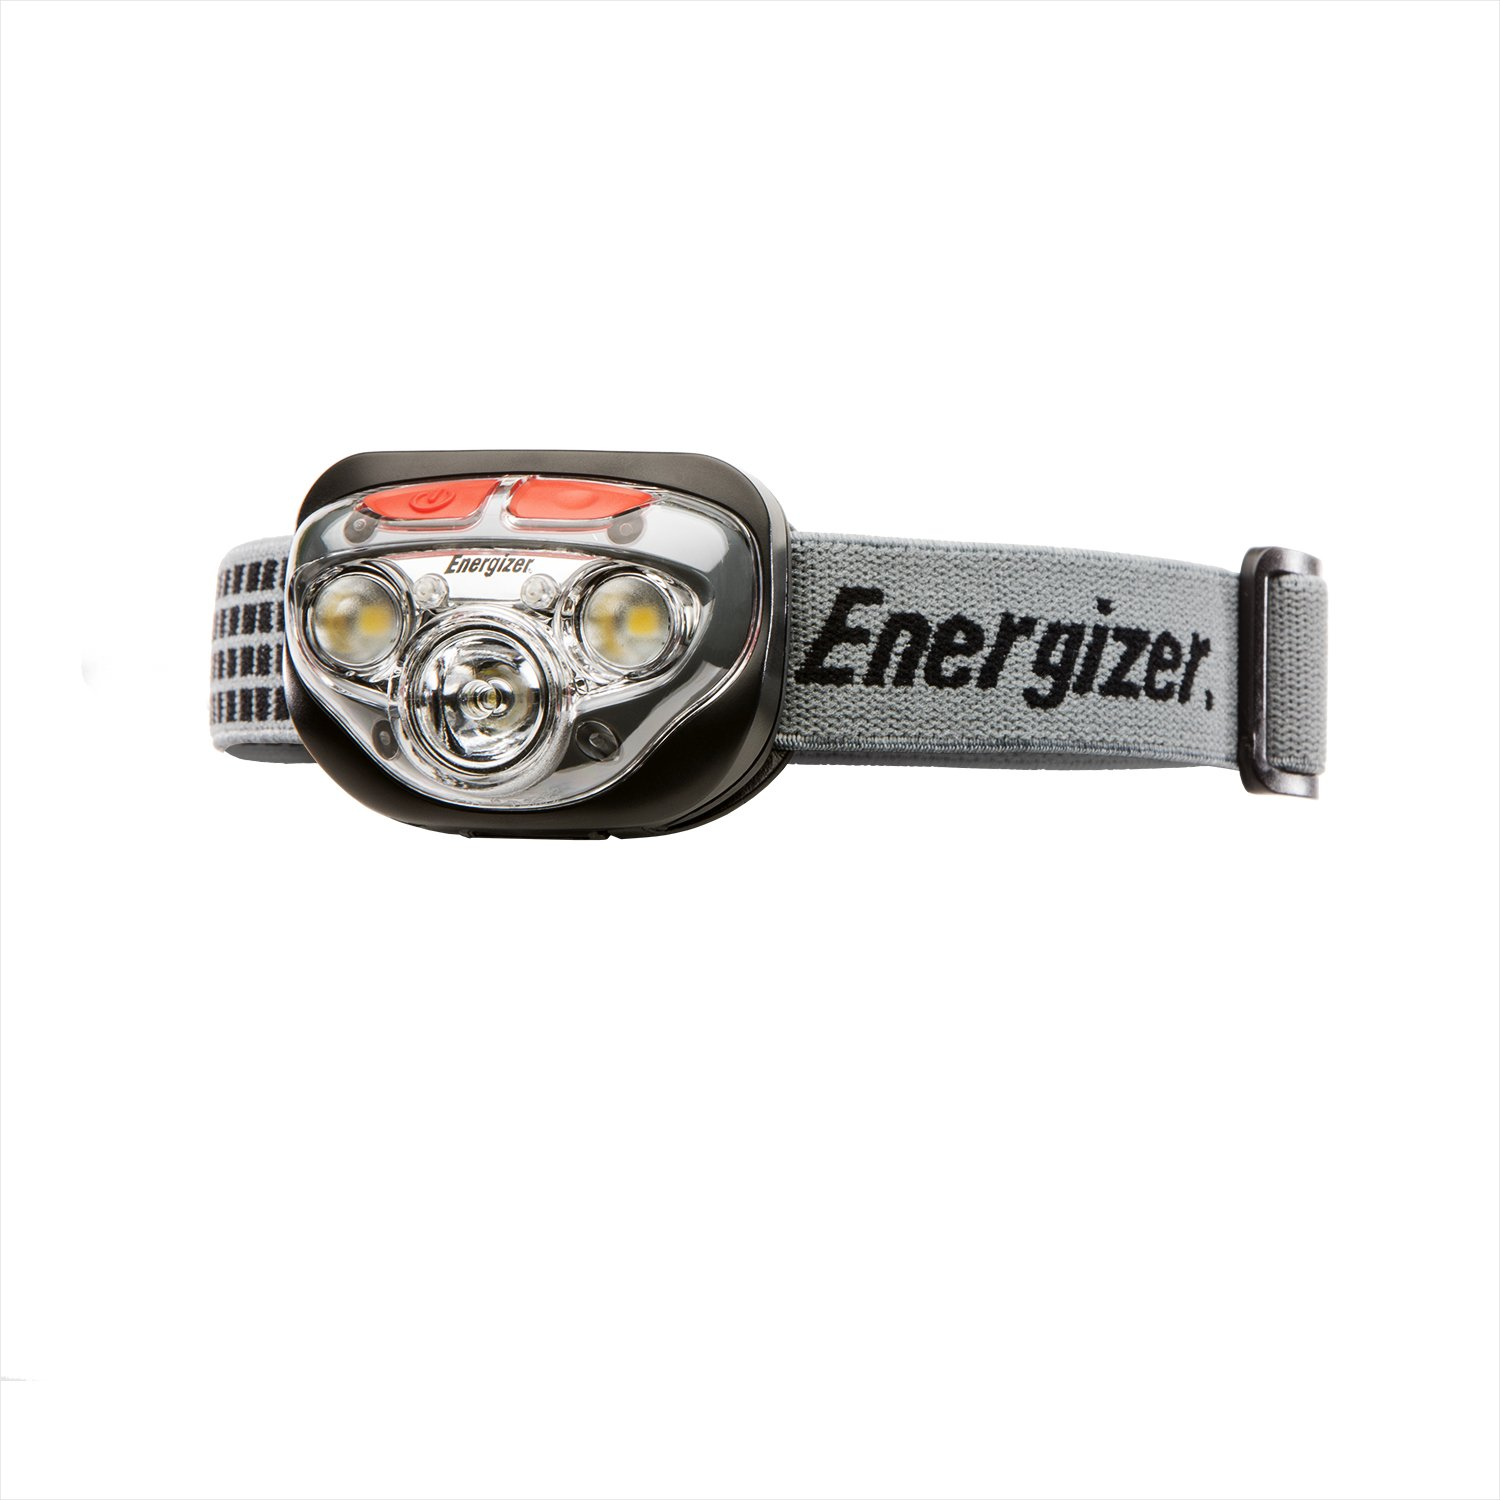 Energizer LED AAA Headlamp with Vision HD+ Optics, Zoomable Flashlight 50 Hour Run Time 315 Lumens (Batteries Included)